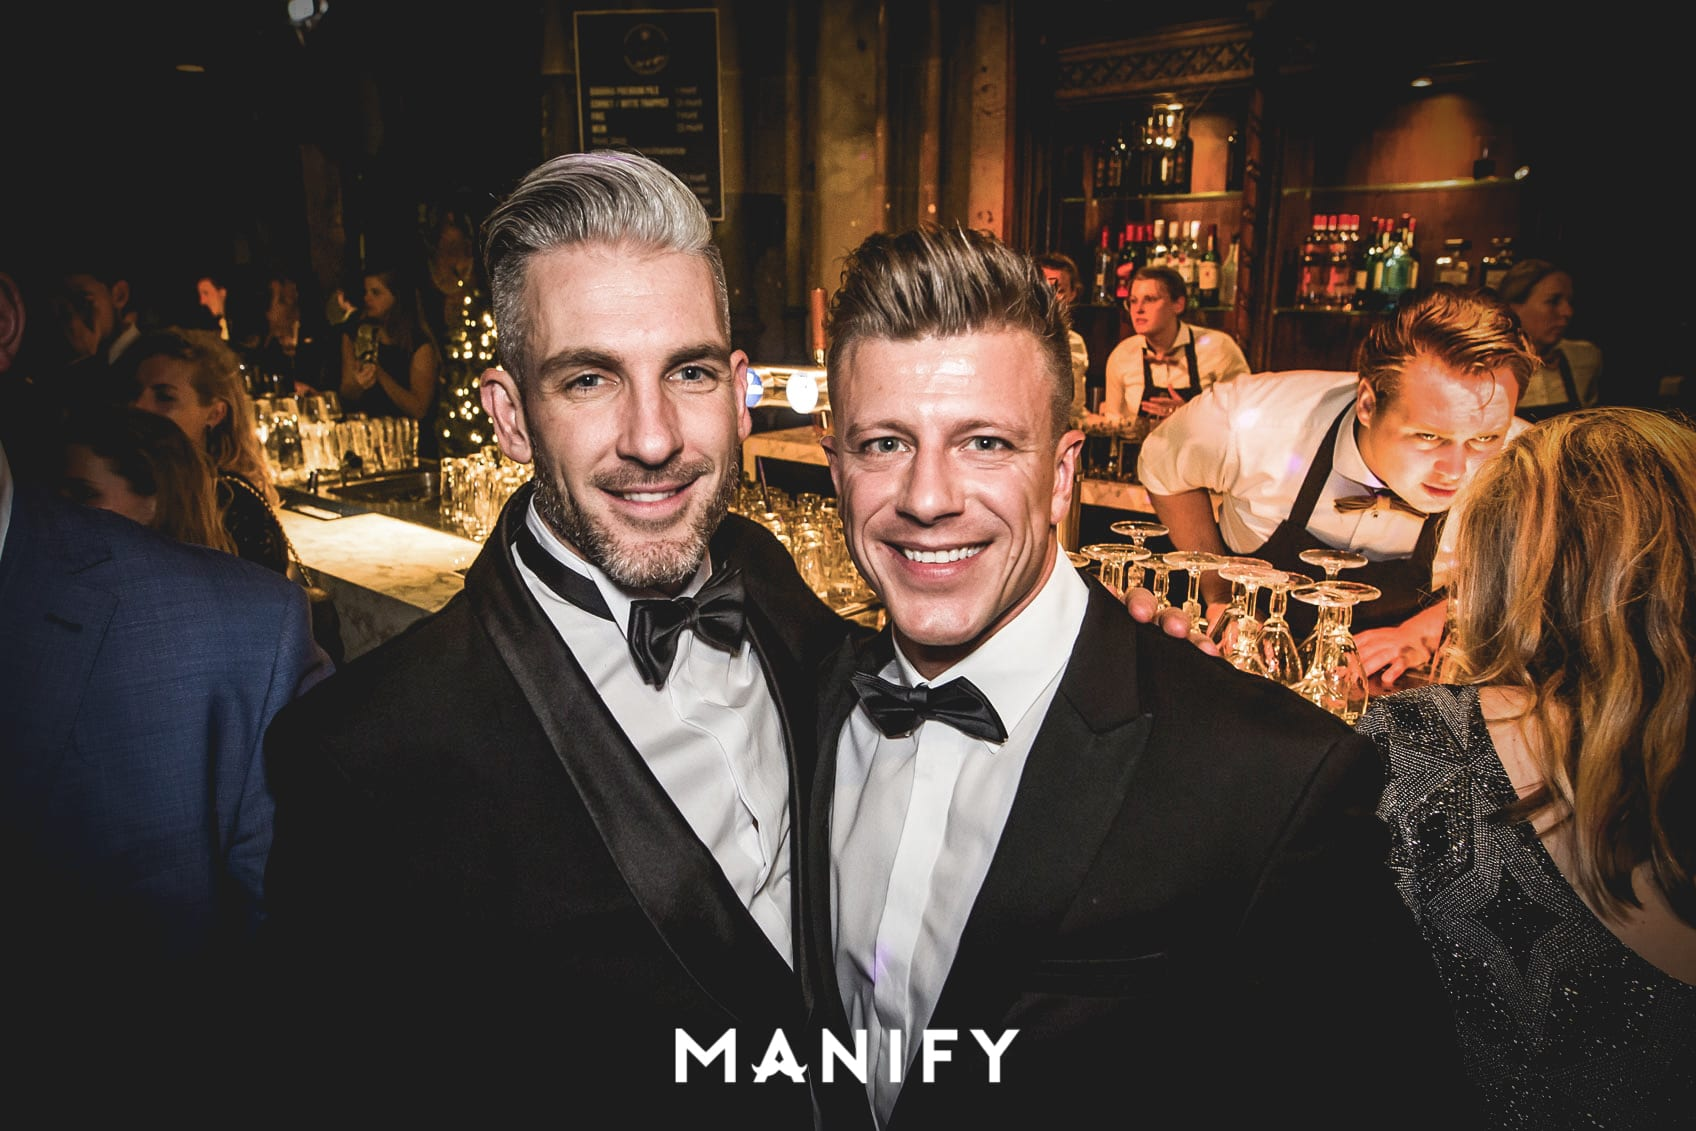 MANIFY_Out_of_office-Orangerie-06-12-19_WM-116-manify